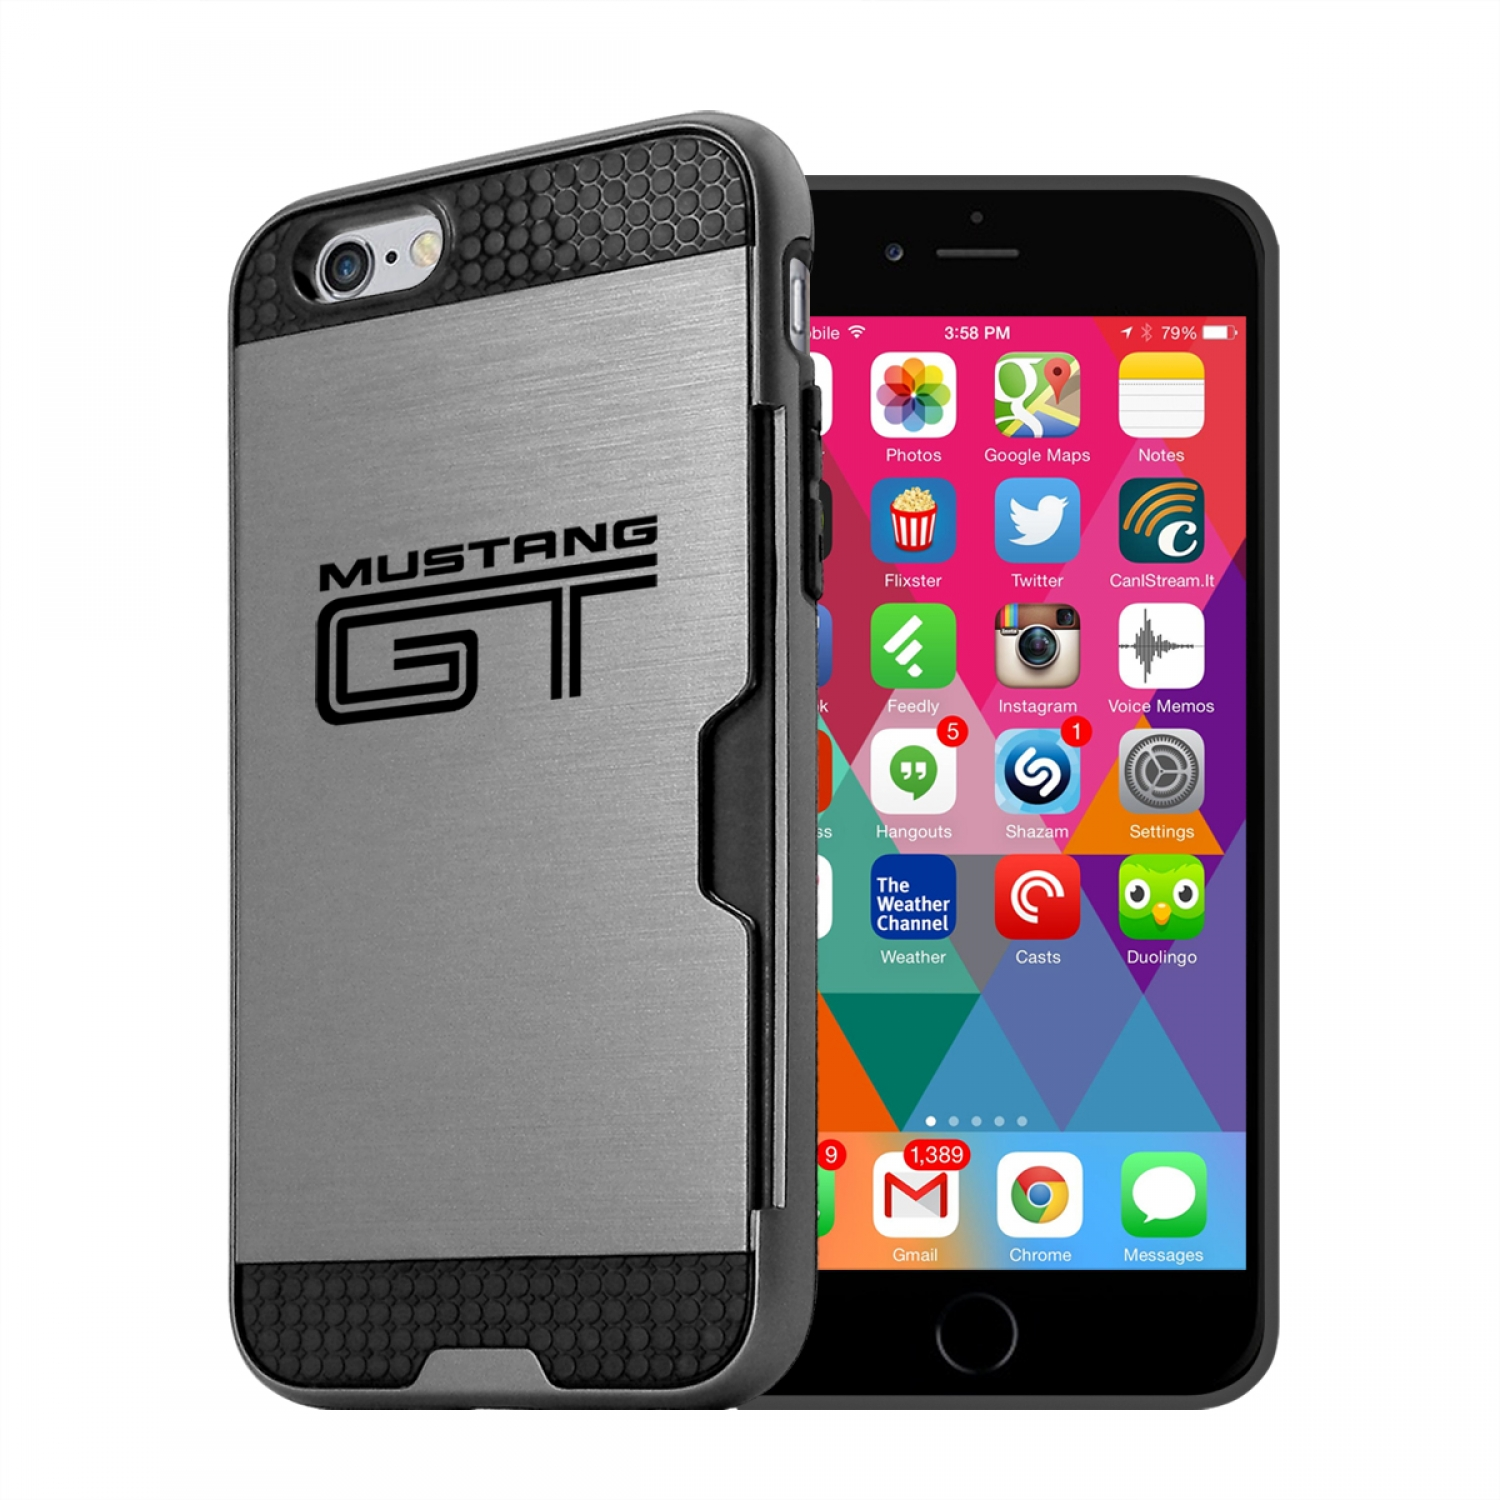 Ford Mustang GT iPhone 6 6s Ultra Thin TPU Silver Phone Case with Credit Card Slot Wallet